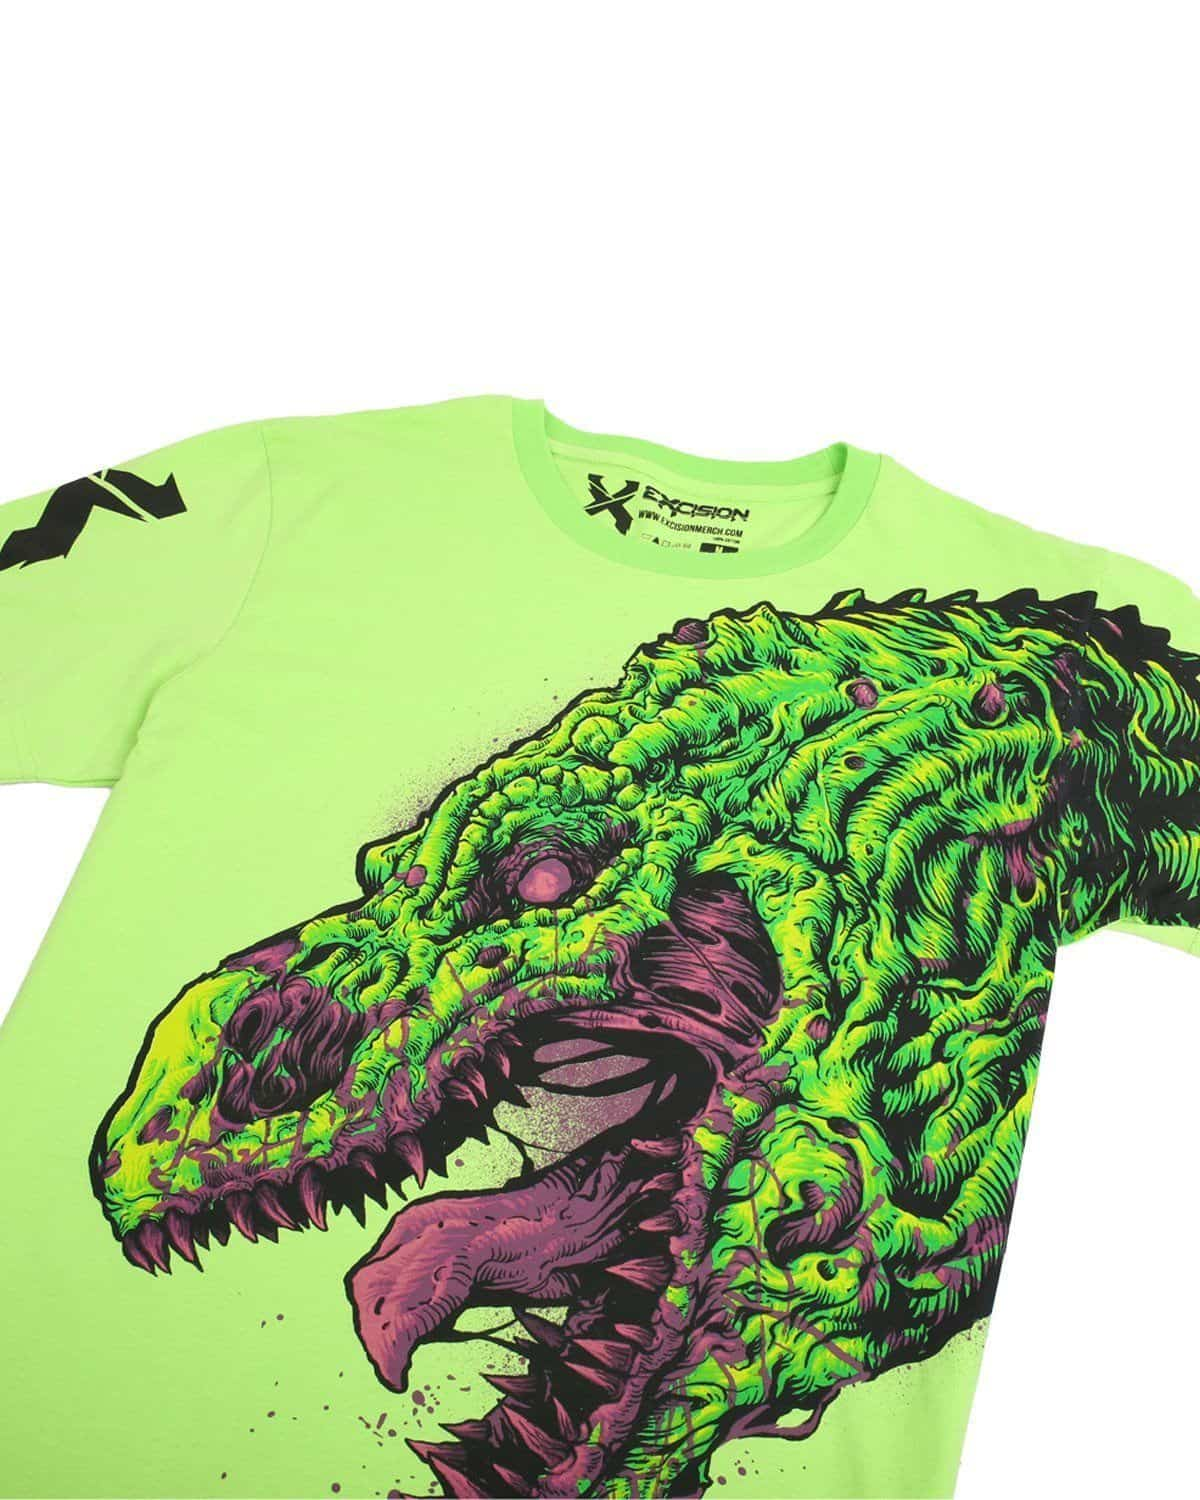 Excision 'Side Rex' Unisex T-Shirt - Lime Green